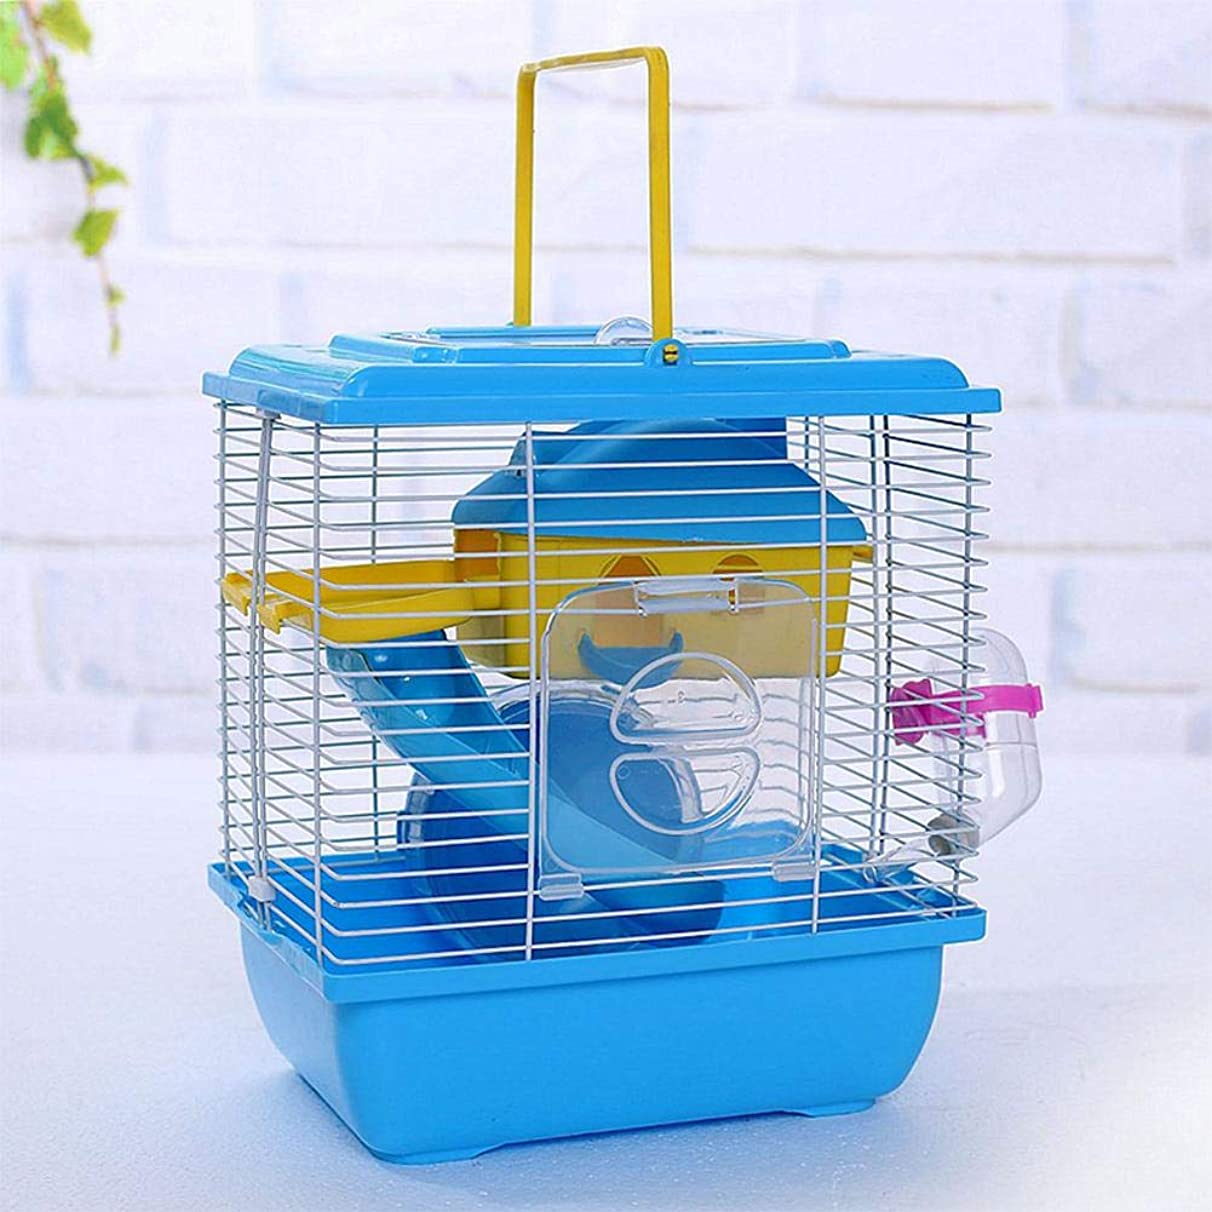 S-World 4Home Hamster Cage - AsyPets Pet Cage Hamster Cottage with Transparent Skylight Double Layer House for Hamster Golden Hamster Pet